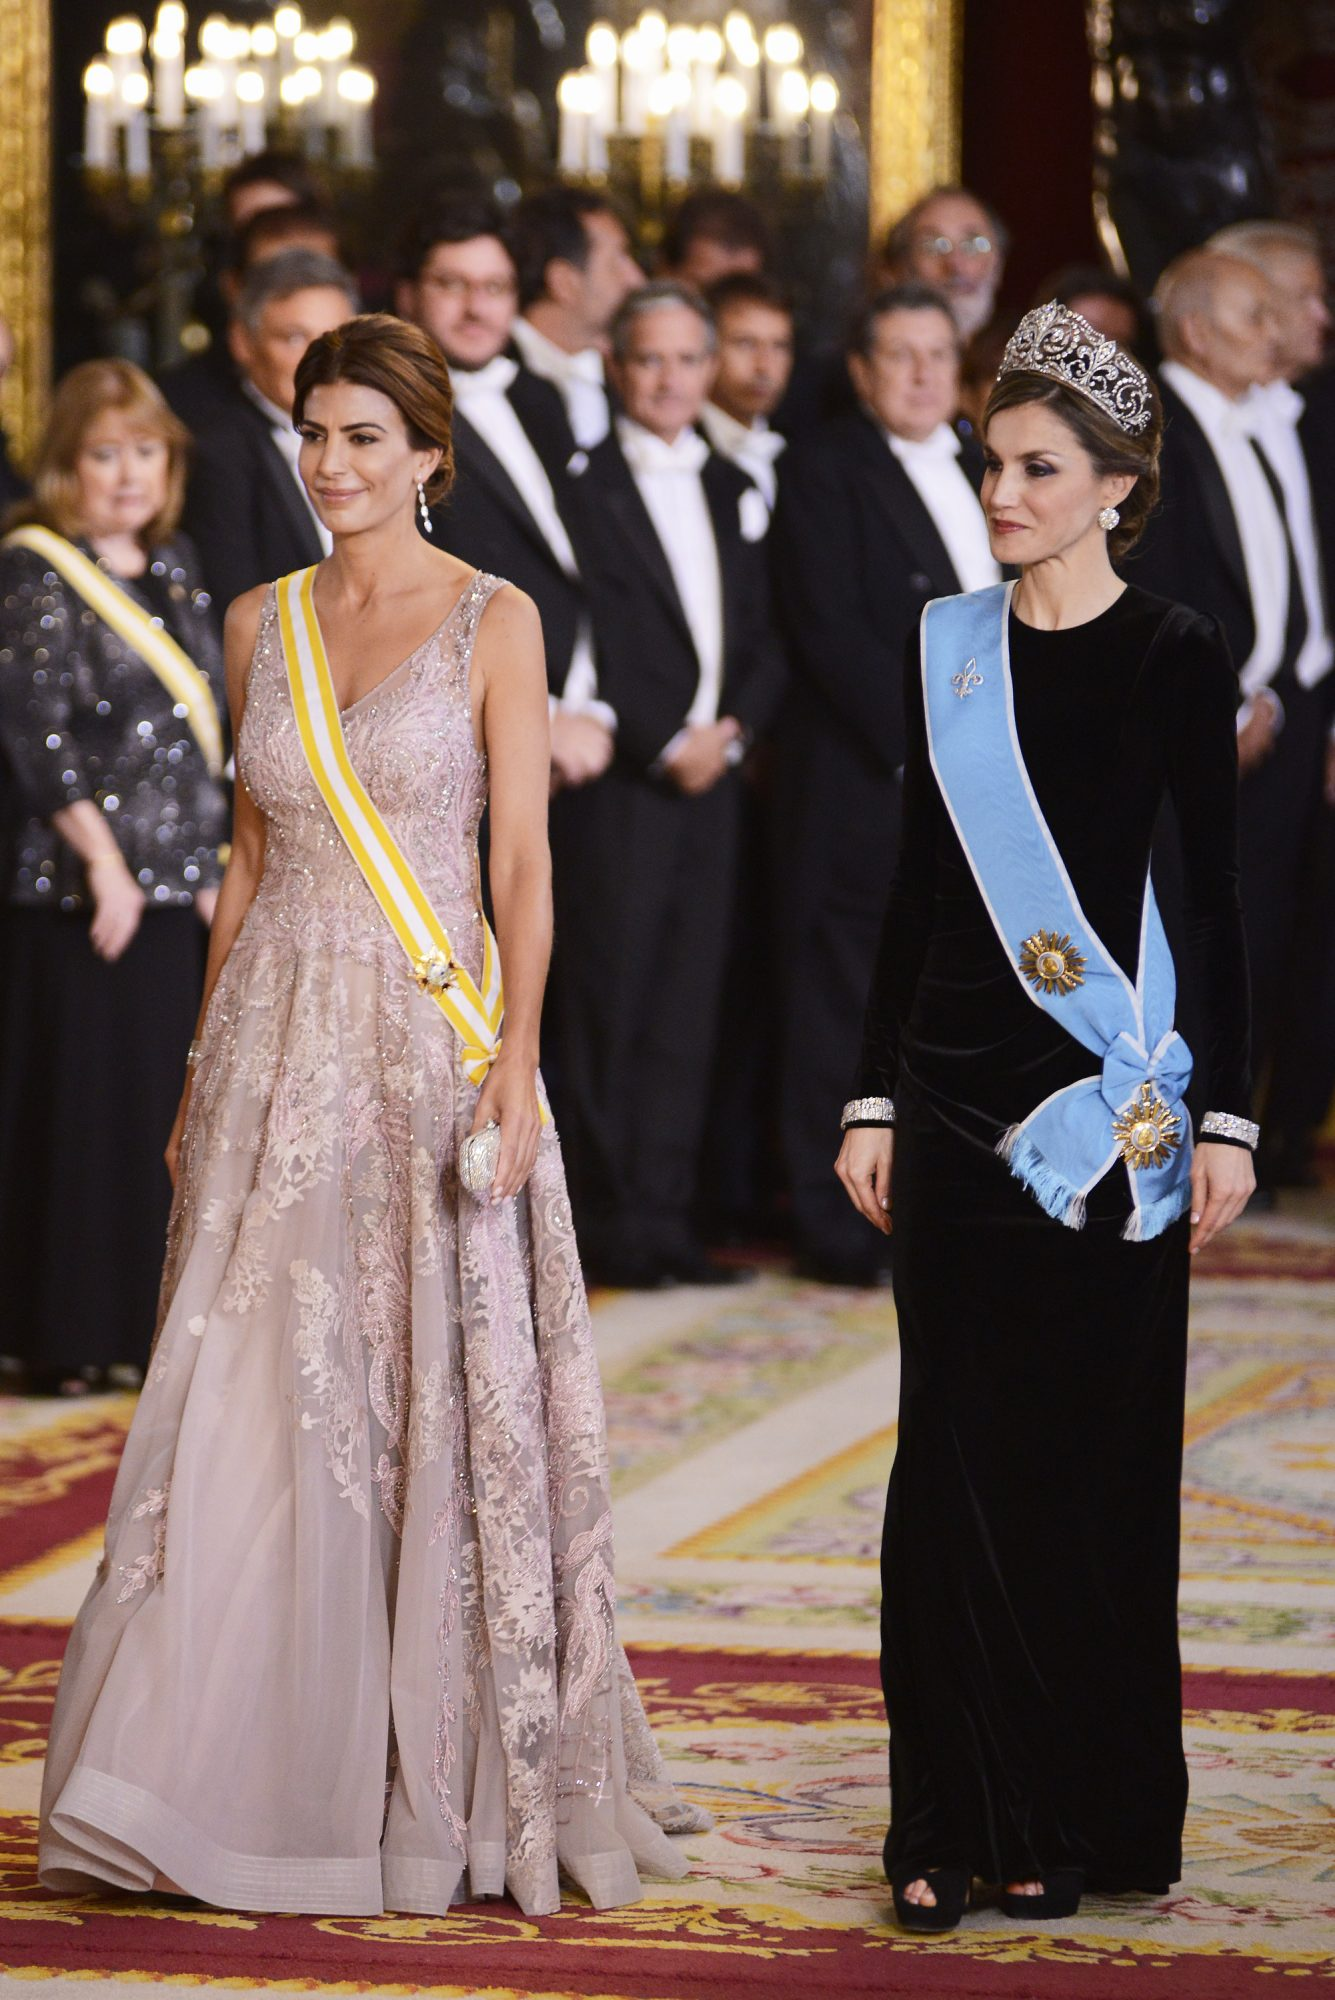 MADRID, SPAIN - FEBRUARY 22: Queen Letizia of Spain (R) receives Argentinian First Lady Juliana Awada (L) for an Gala Dinner at the Royal Palace on February 22, 2017 in Madrid, Spain. (Photo by Borja Benito - Pool/Getty Images)